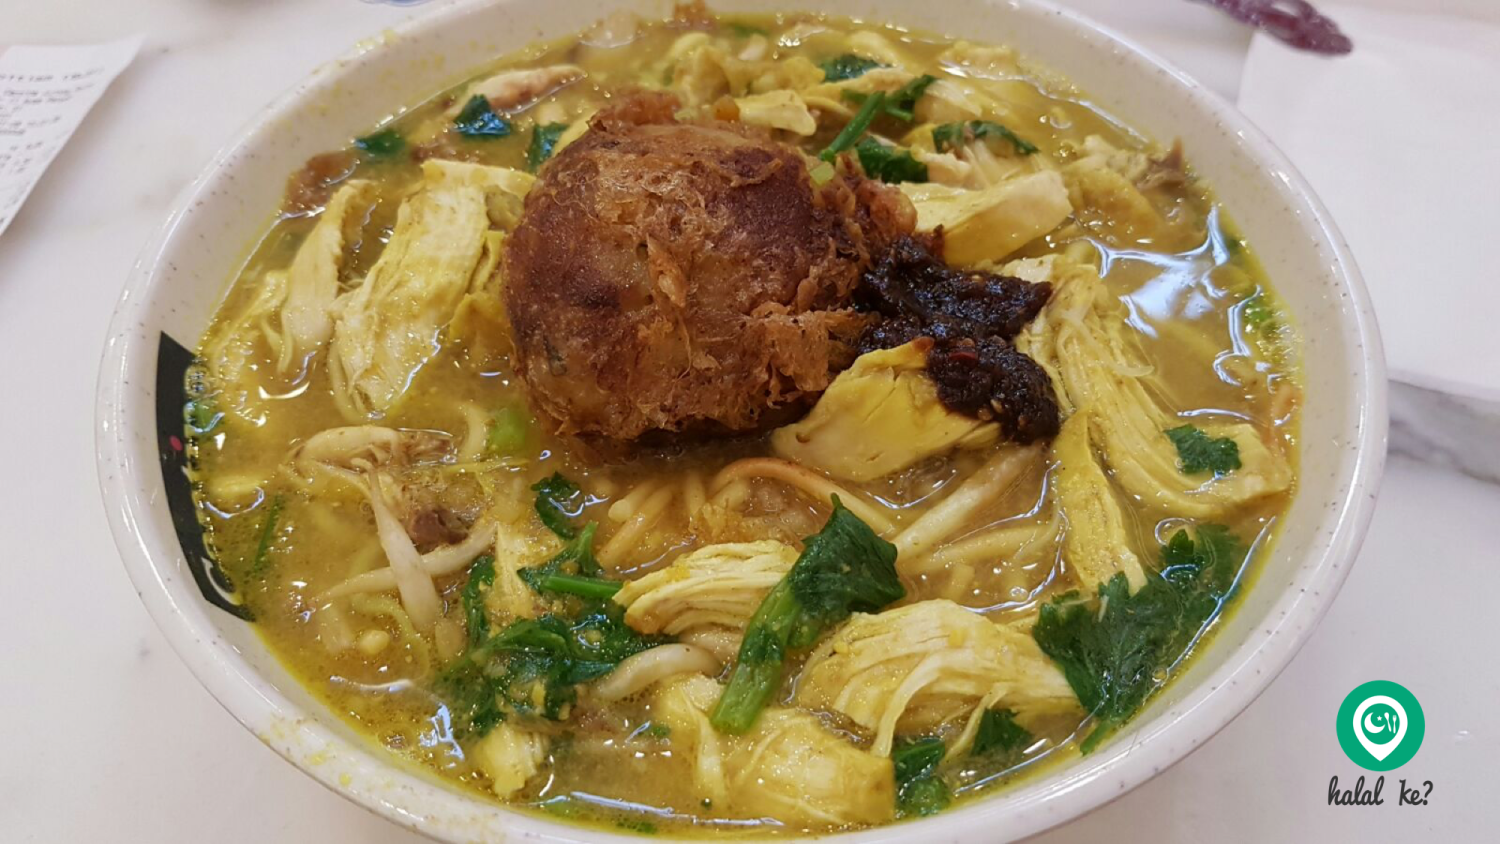 The much-loved Mee Soto commonly found in Singapore and Malaysia.